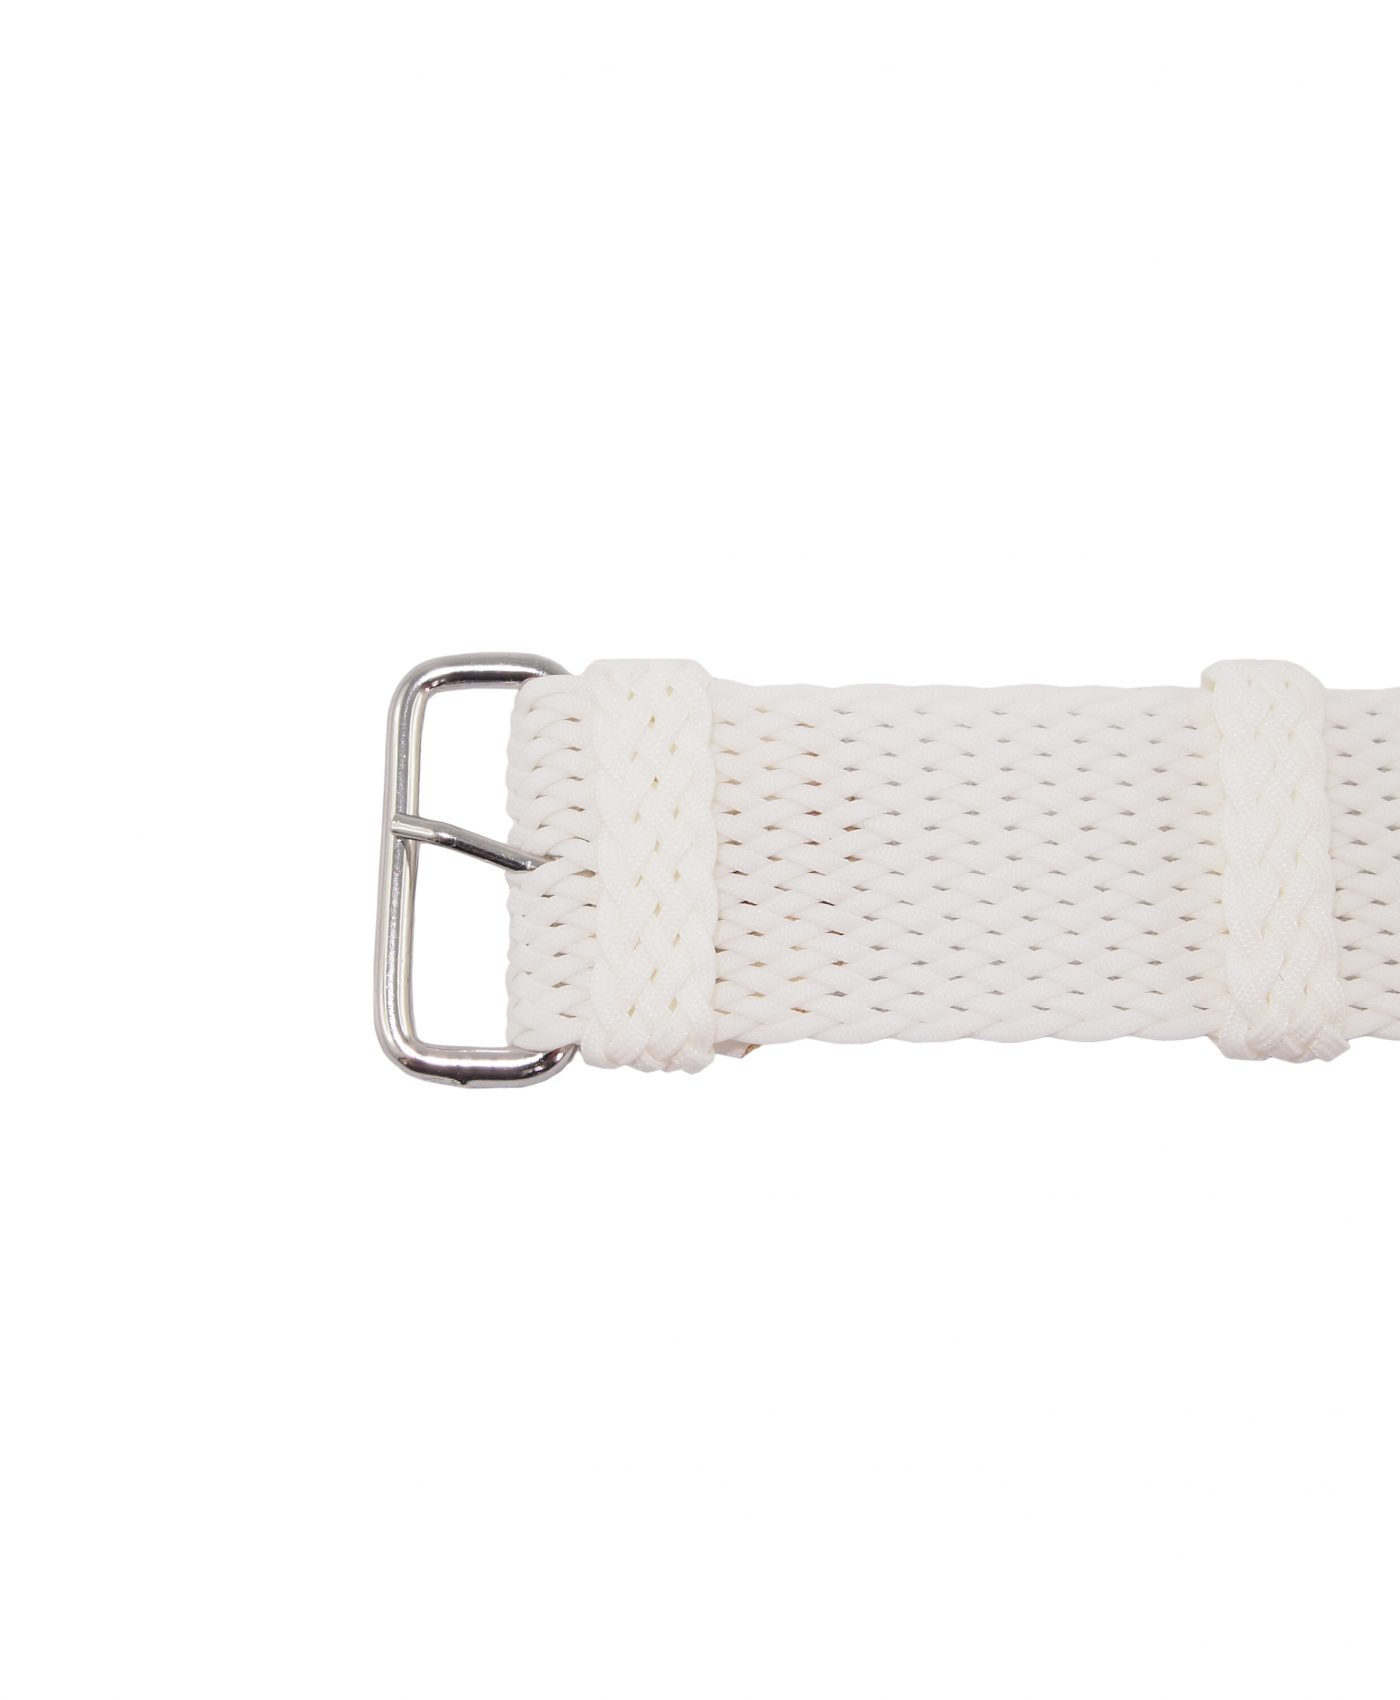 Perlon-Strap-White-22mm-WatchBandit